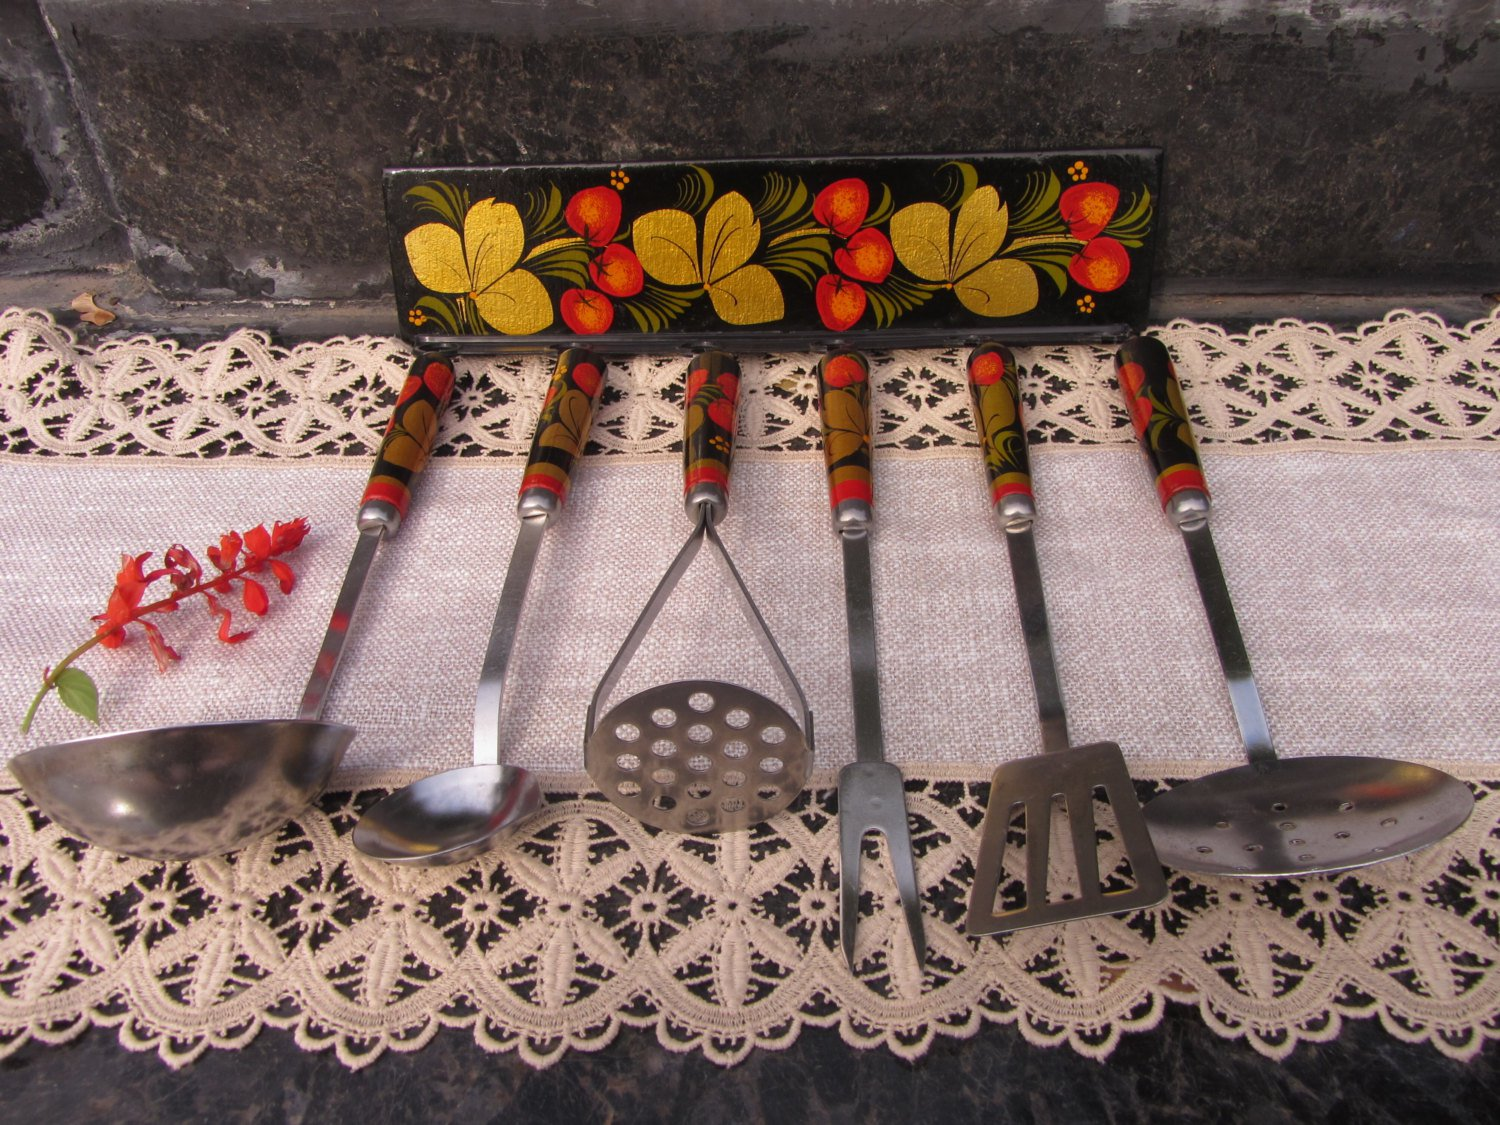 Vintage Khokhloma Kitchen Set of 6, Rustic Kitchen Set, Wooden Hand Painted Handles, Russian Folk Ar